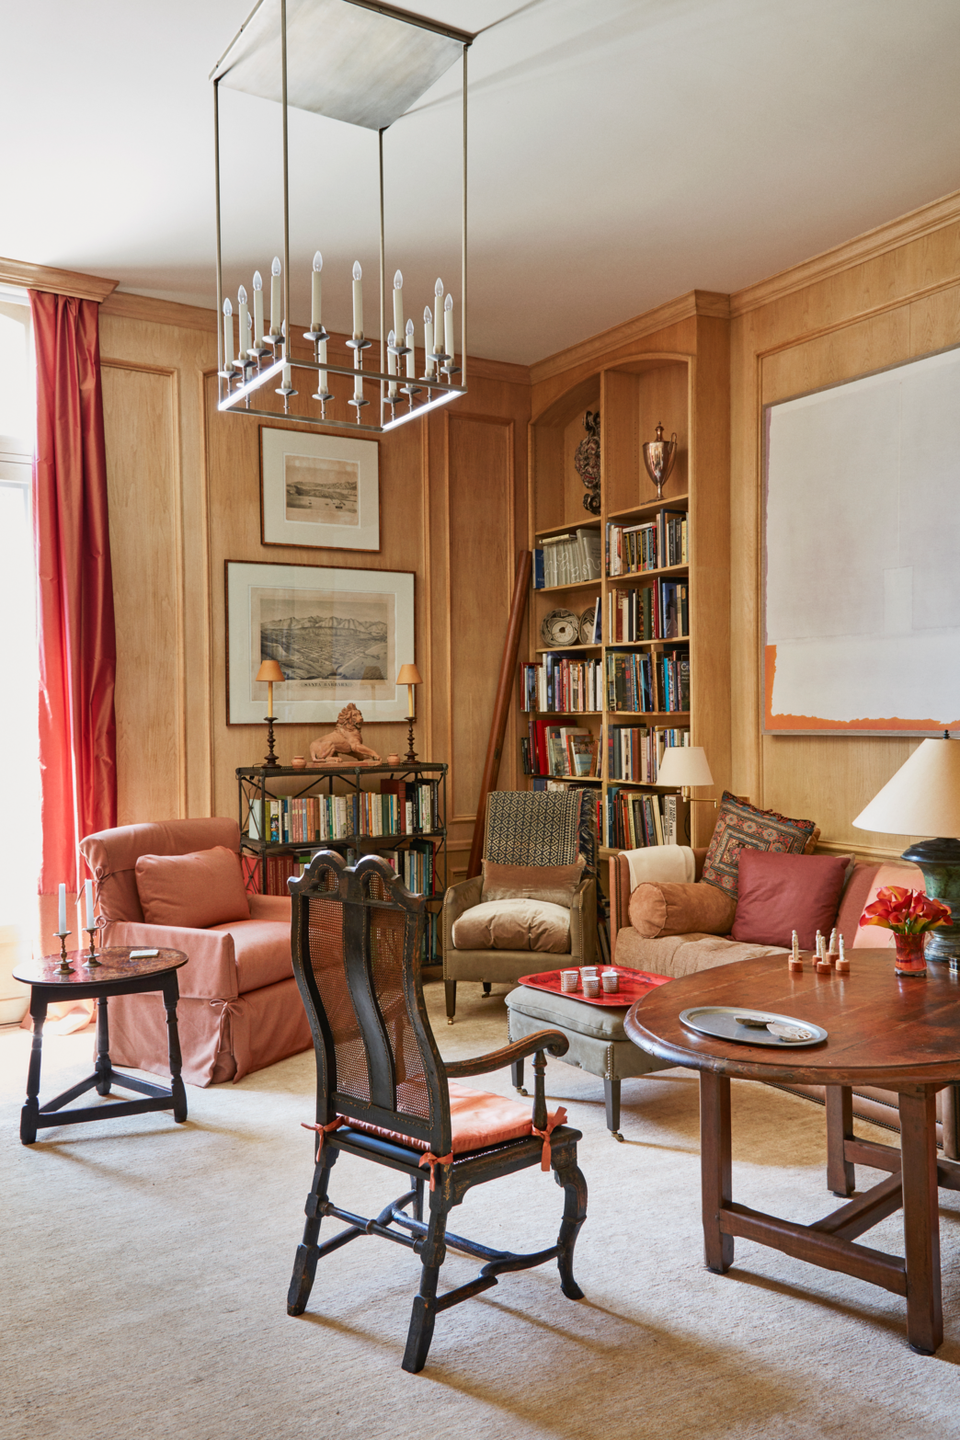 """<p>An eclectic mix of classicist and modernist styles, the Montecito getaway of <span>John Saladino</span> acts as urbane gallery of the designer's most treasured antiquities and art. A slick, modern <a href=""""http://www.remains.com/"""" rel=""""nofollow noopener"""" target=""""_blank"""" data-ylk=""""slk:Remains Lighting"""" class=""""link rapid-noclick-resp"""">Remains Lighting</a> chandelier offsets the rustic wall paneling of the library. The sofa from Saladino's own line features a <a href=""""https://www.dualoy.com/"""" rel=""""nofollow noopener"""" target=""""_blank"""" data-ylk=""""slk:Dualoy"""" class=""""link rapid-noclick-resp"""">Dualoy</a> leather and <a href=""""http://quadrillefabrics.com/"""" rel=""""nofollow noopener"""" target=""""_blank"""" data-ylk=""""slk:Quadrille"""" class=""""link rapid-noclick-resp"""">Quadrille</a> fabric. A <a href=""""http://fortuny.com/"""" rel=""""nofollow noopener"""" target=""""_blank"""" data-ylk=""""slk:Fortuny"""" class=""""link rapid-noclick-resp"""">Fortuny</a> cushion tops a Charles II-style caned armchair. The rug is from <a href=""""https://www.saccocarpet.com/"""" rel=""""nofollow noopener"""" target=""""_blank"""" data-ylk=""""slk:Sacco Carpet"""" class=""""link rapid-noclick-resp"""">Sacco Carpet</a>.</p>"""